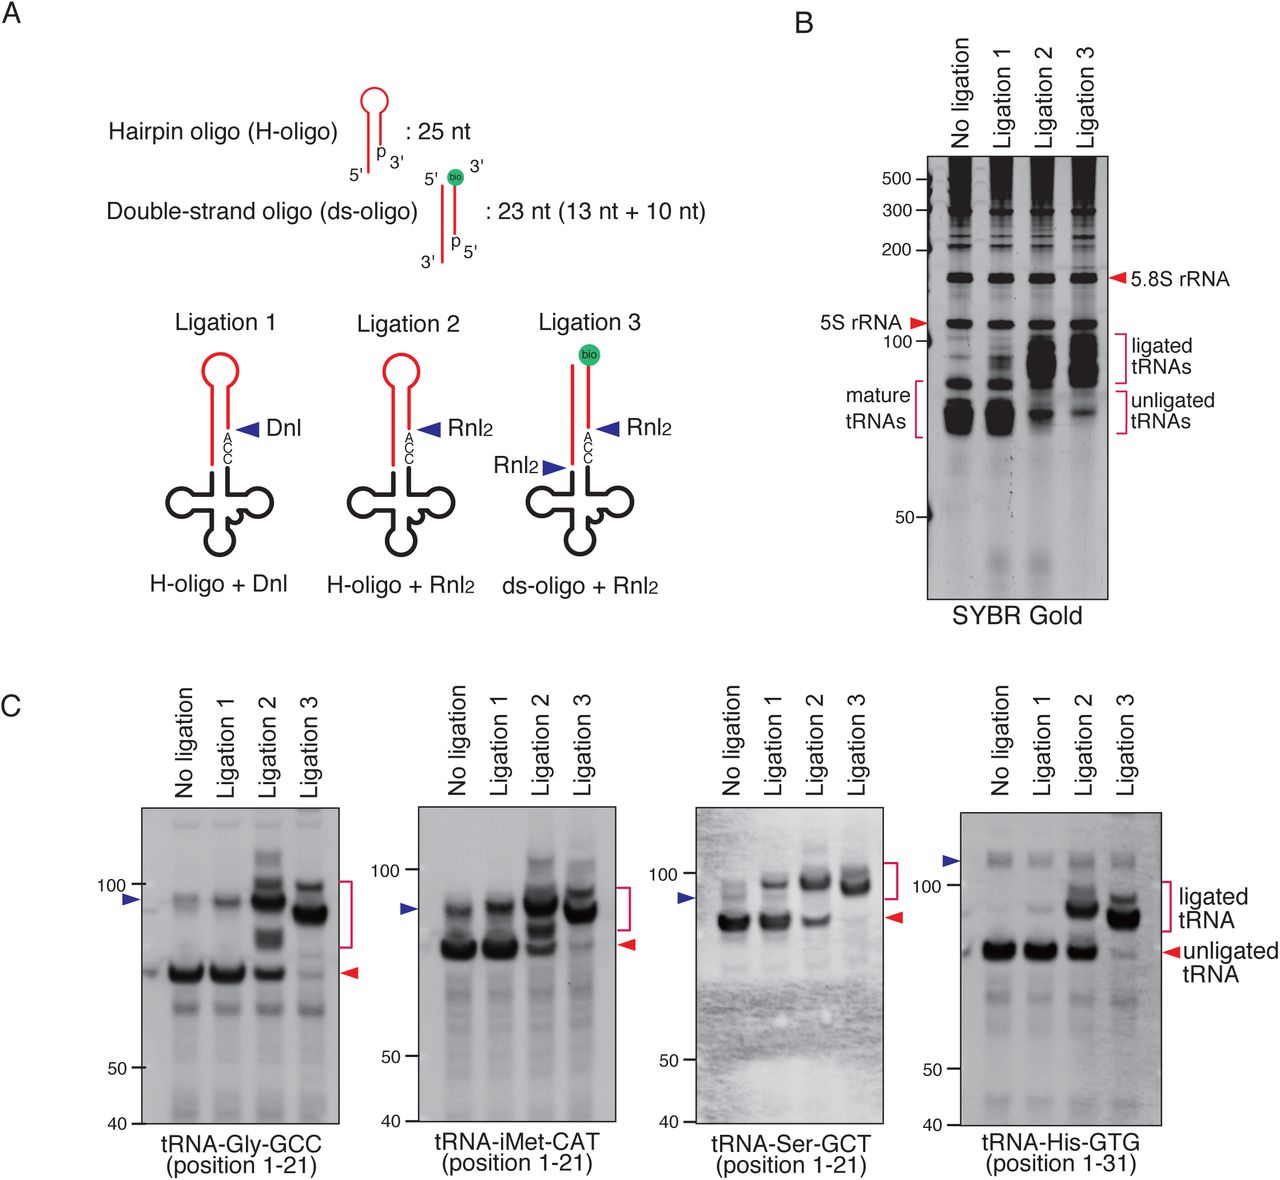 Validation of CCA-specific ligation methods. (A) Schema for three CCA-specific ligation methods. Dnl: T4 DNA ligase, <t>Rnl2:</t> <t>T4</t> RNA ligase 2, bio: biotin. (B-C) The method using double-strand oligo and RNA <t>ligase</t> 2 has the best ligation efficiency. (B) SYBR Gold staining and (C) Northern blotting for CCA-specific ligation products. The blue arrowheads indicate the bands for pre-tRNAs.